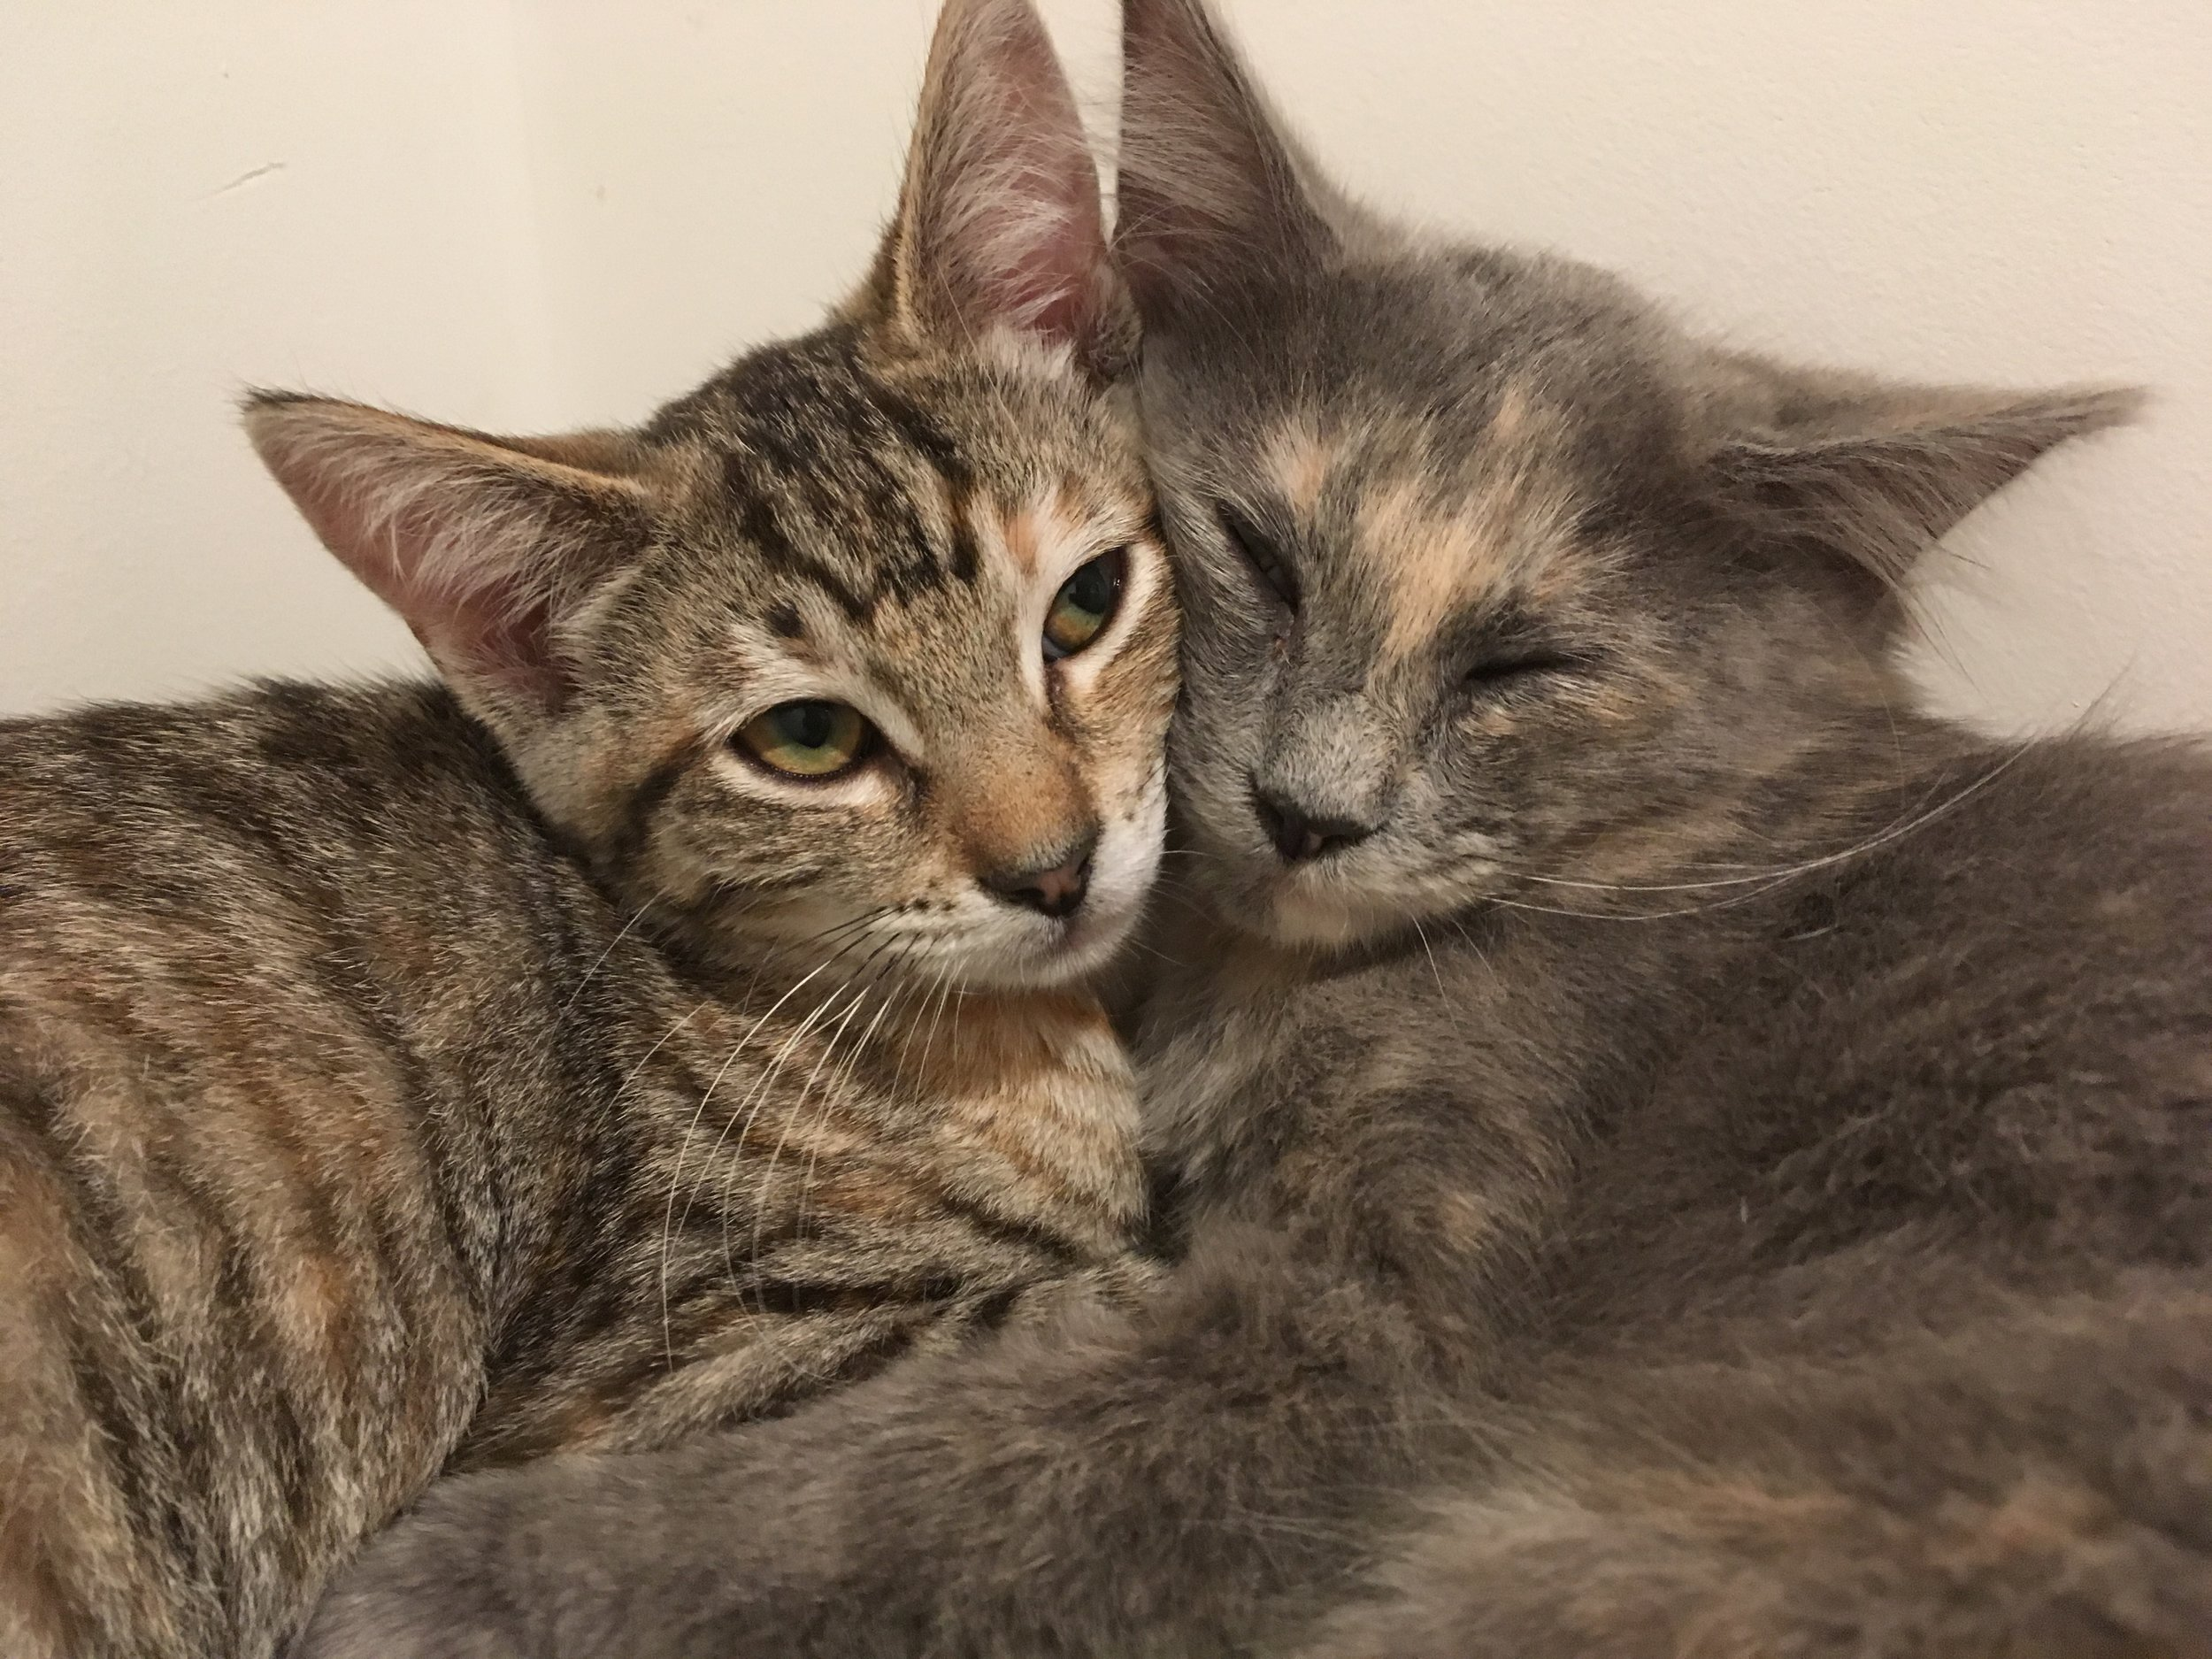 Sister love - Oak (left) and Leaf love cuddling. They are 4-month-old girls.